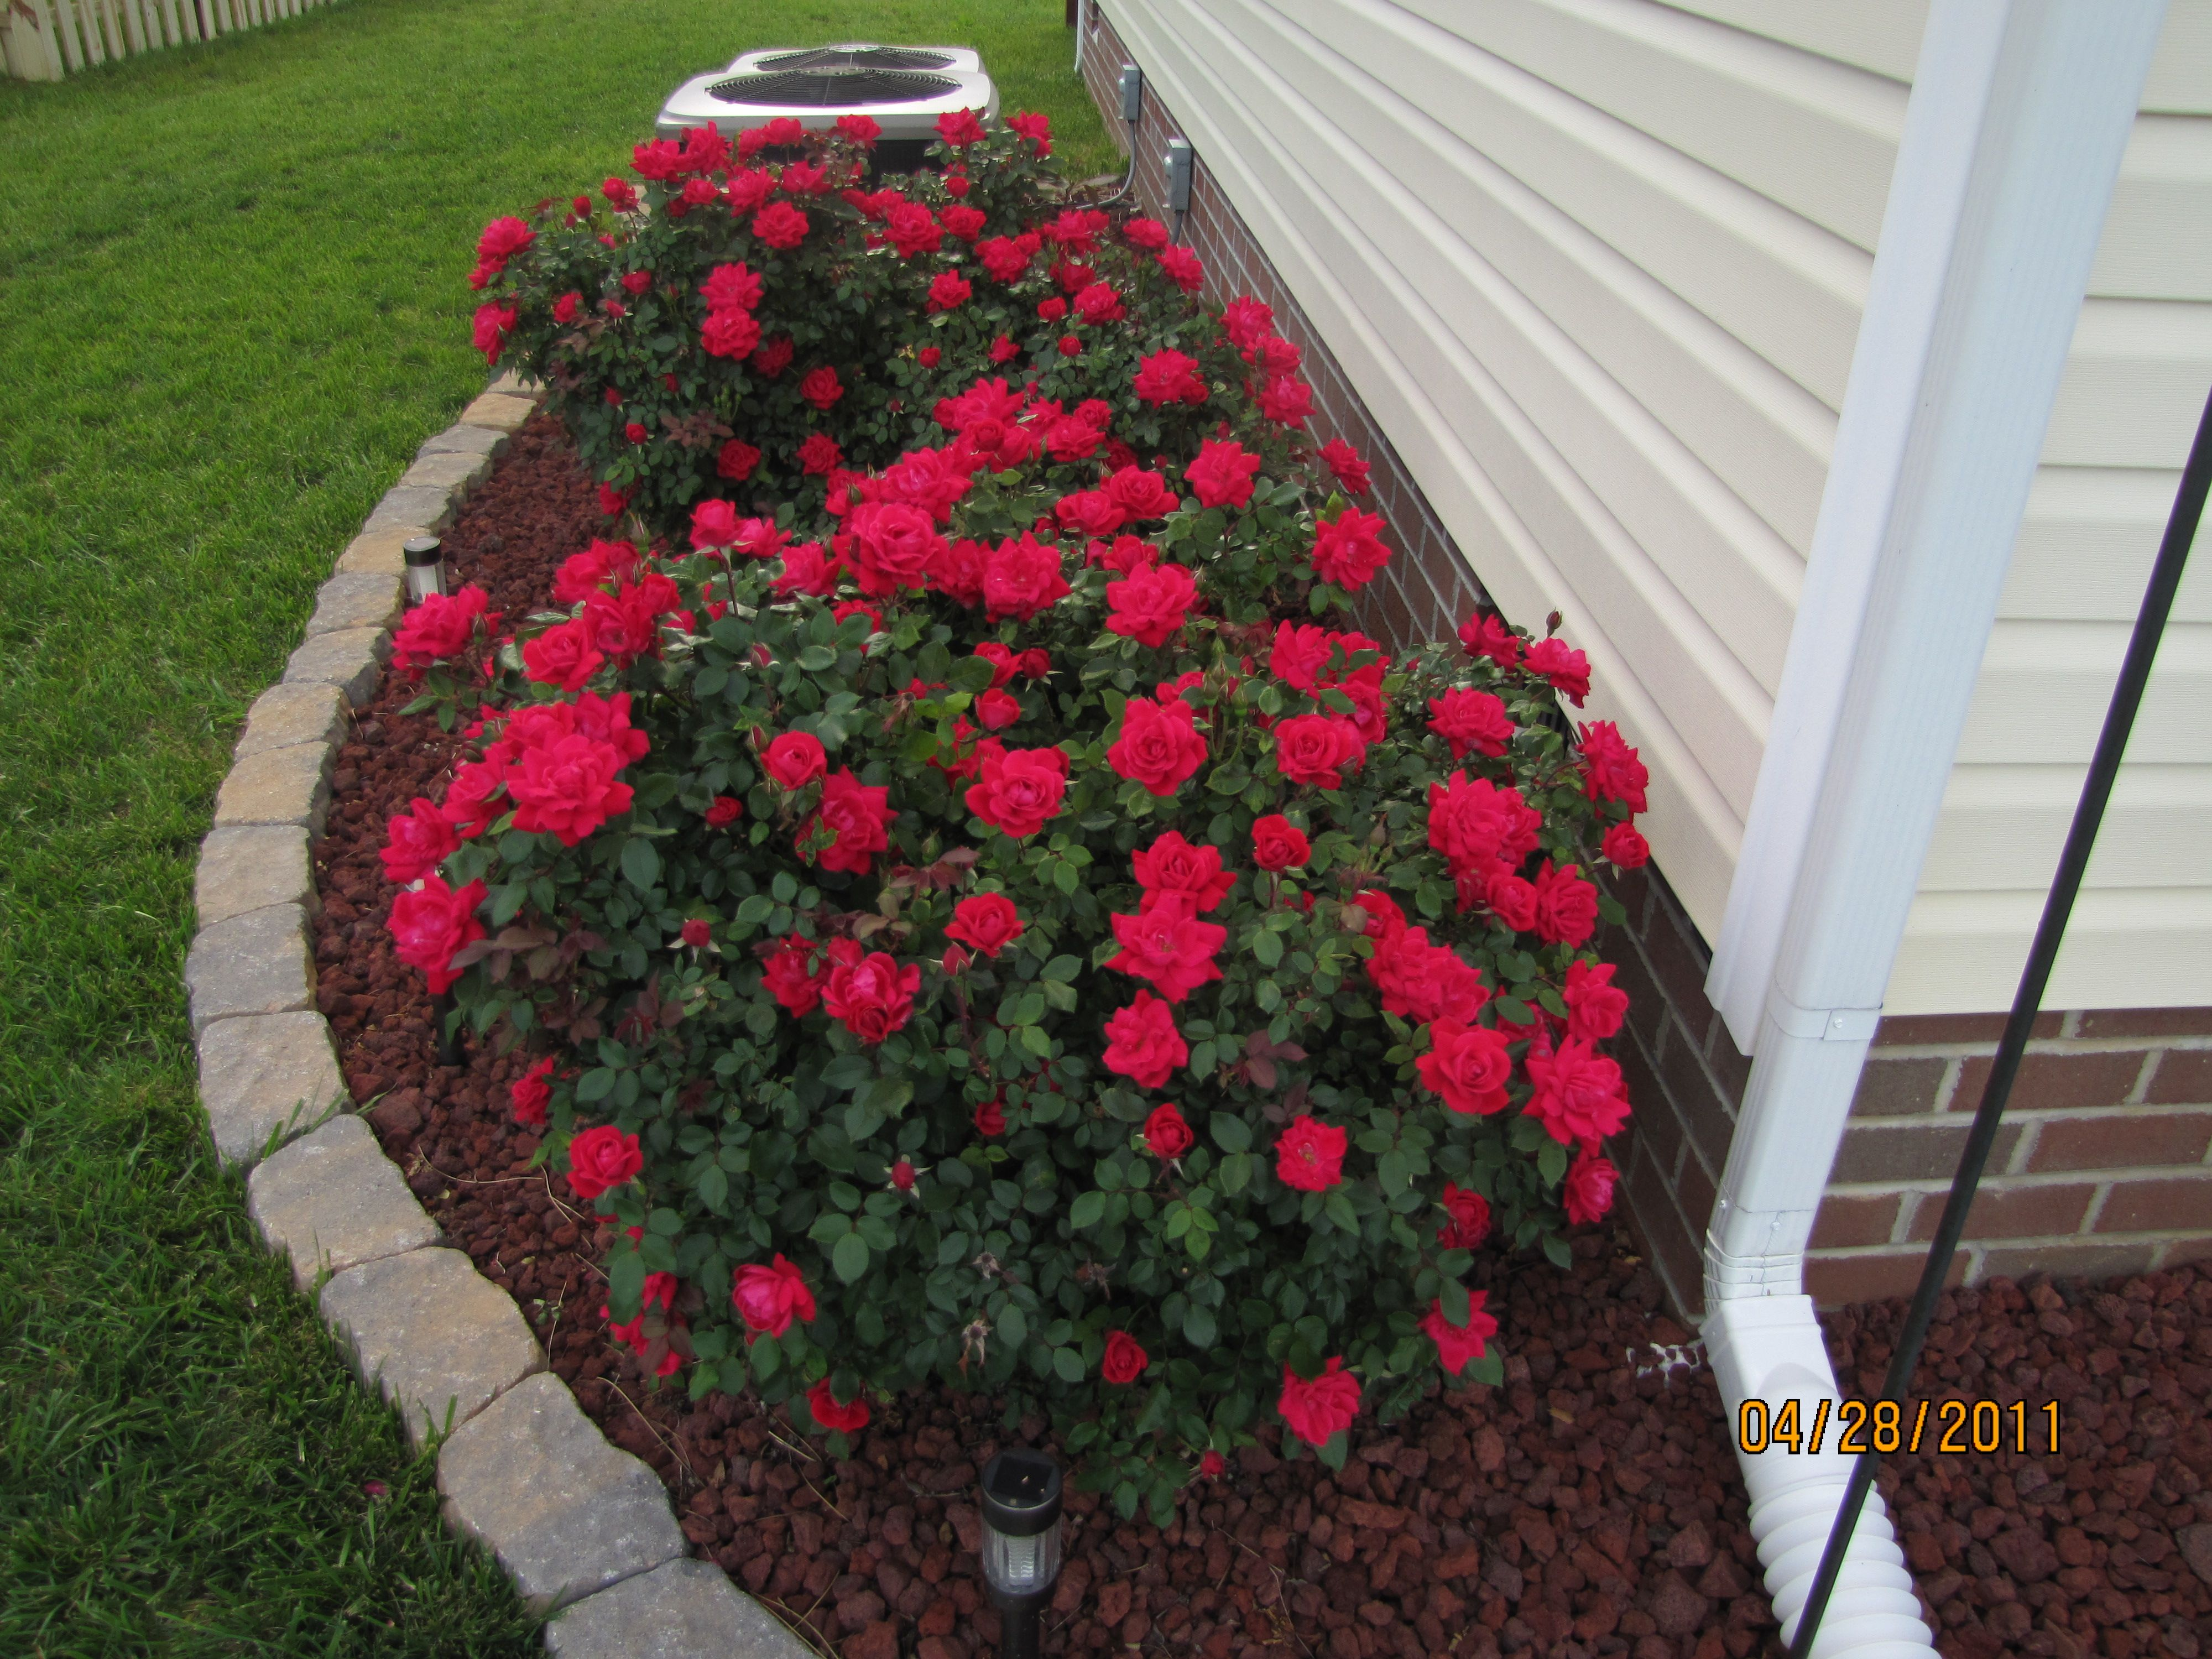 Roses In Garden: My Double Knock Out Roses From Last Summer That Just Keep